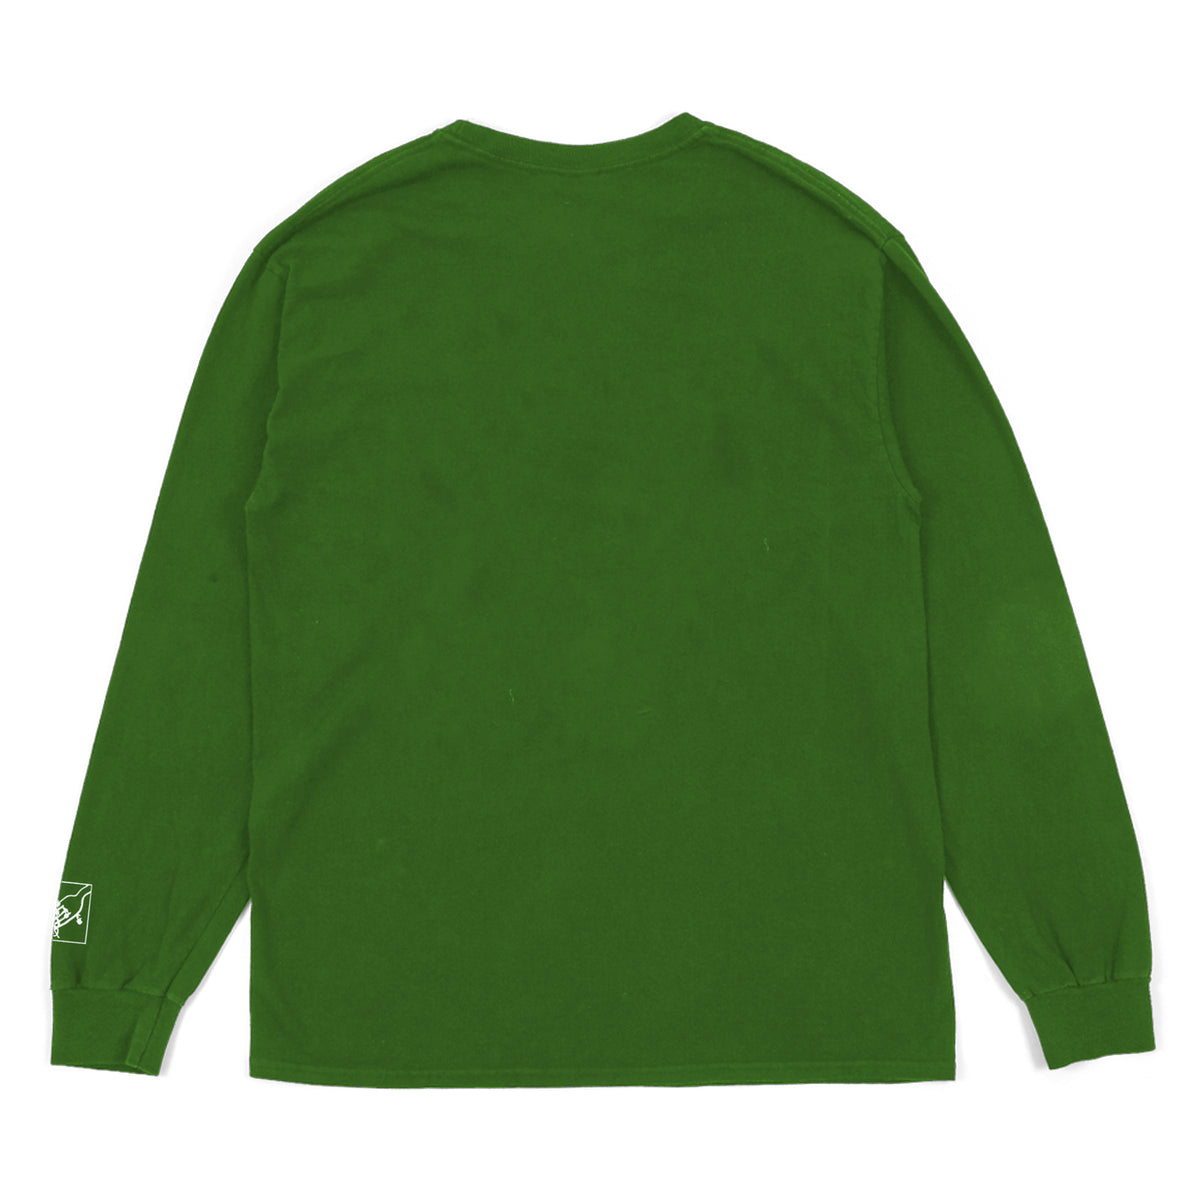 SOUND NUTRITION - L/S TEE - GRASS GREEN